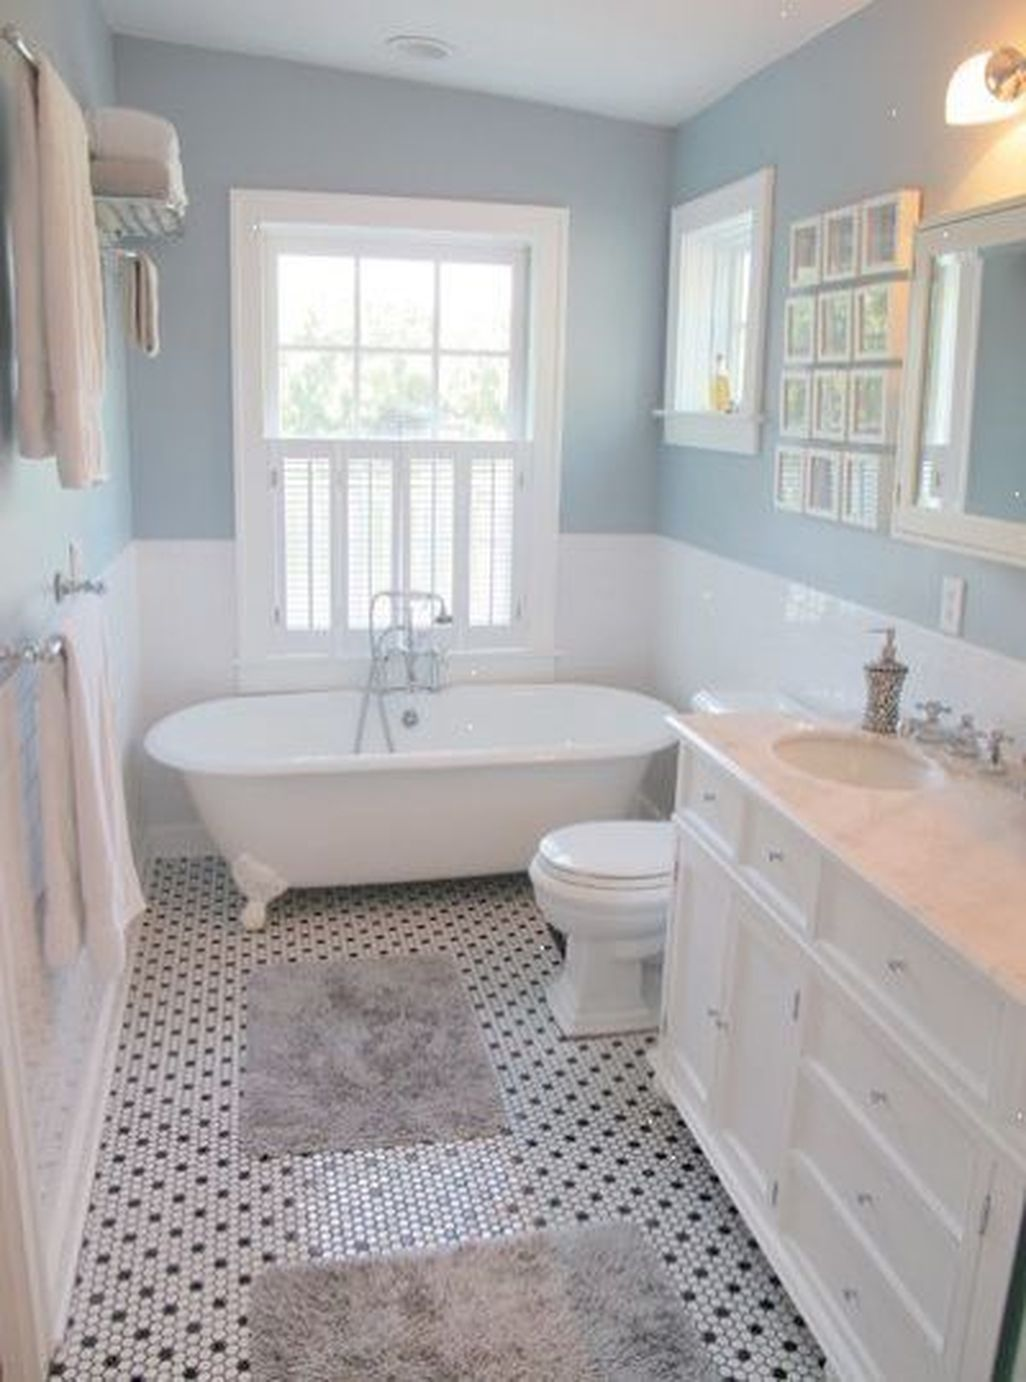 Pin By Azty On Decor In 2020 Small Bathroom Remodel